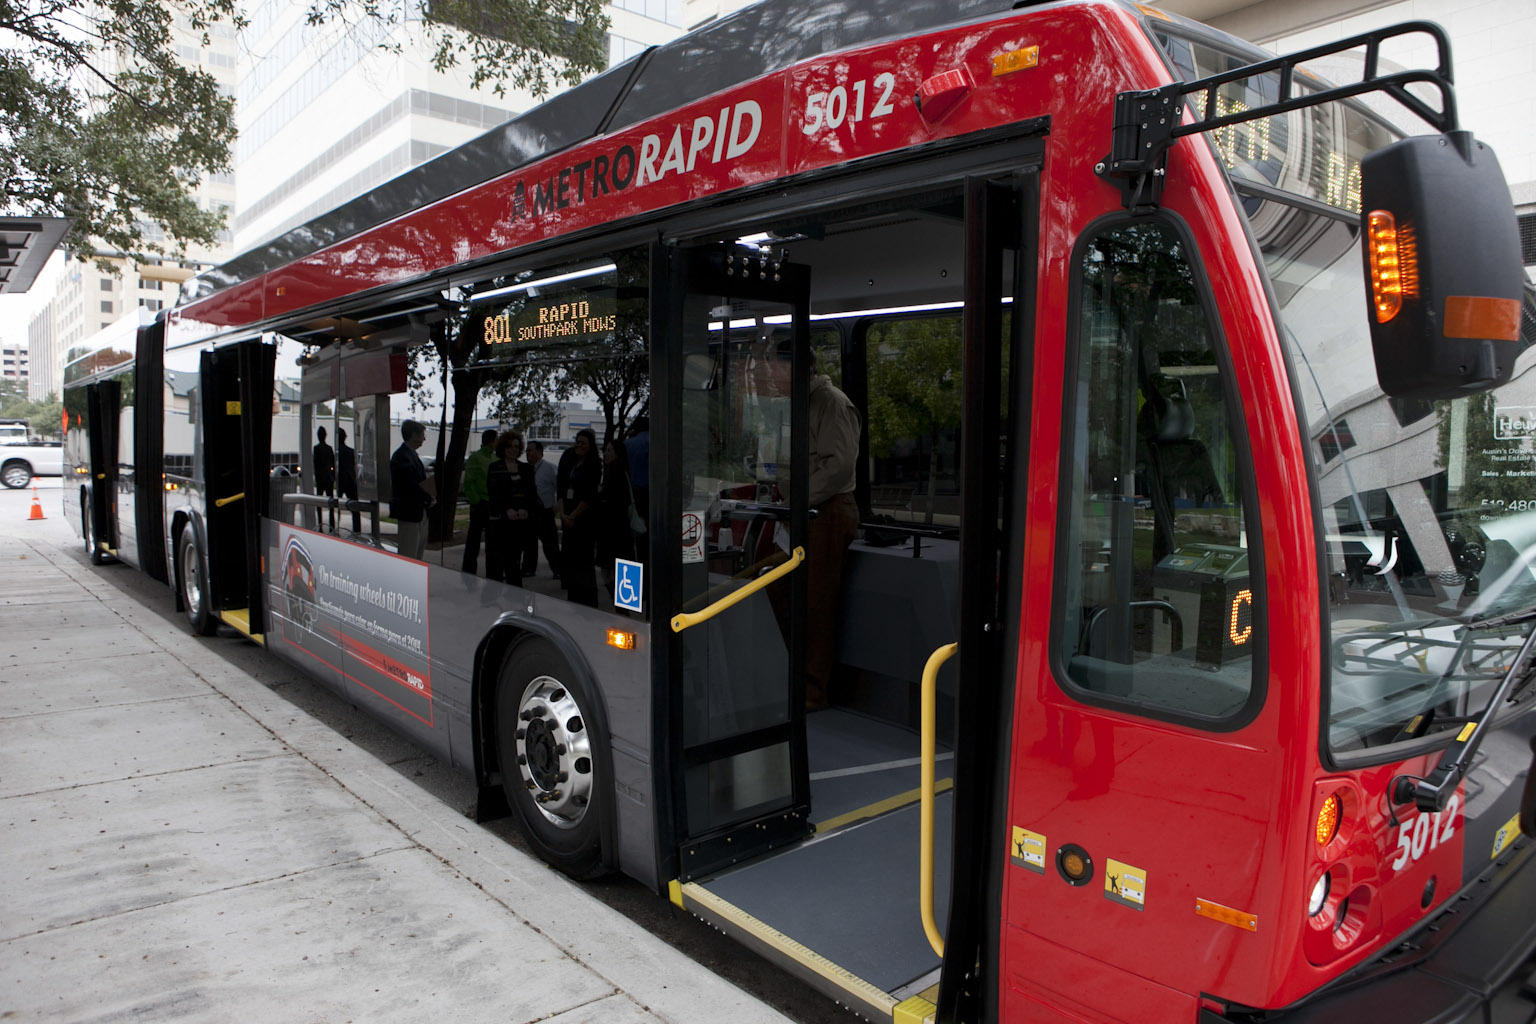 austin's award-winning rapid bus signal system only works 15-20% of